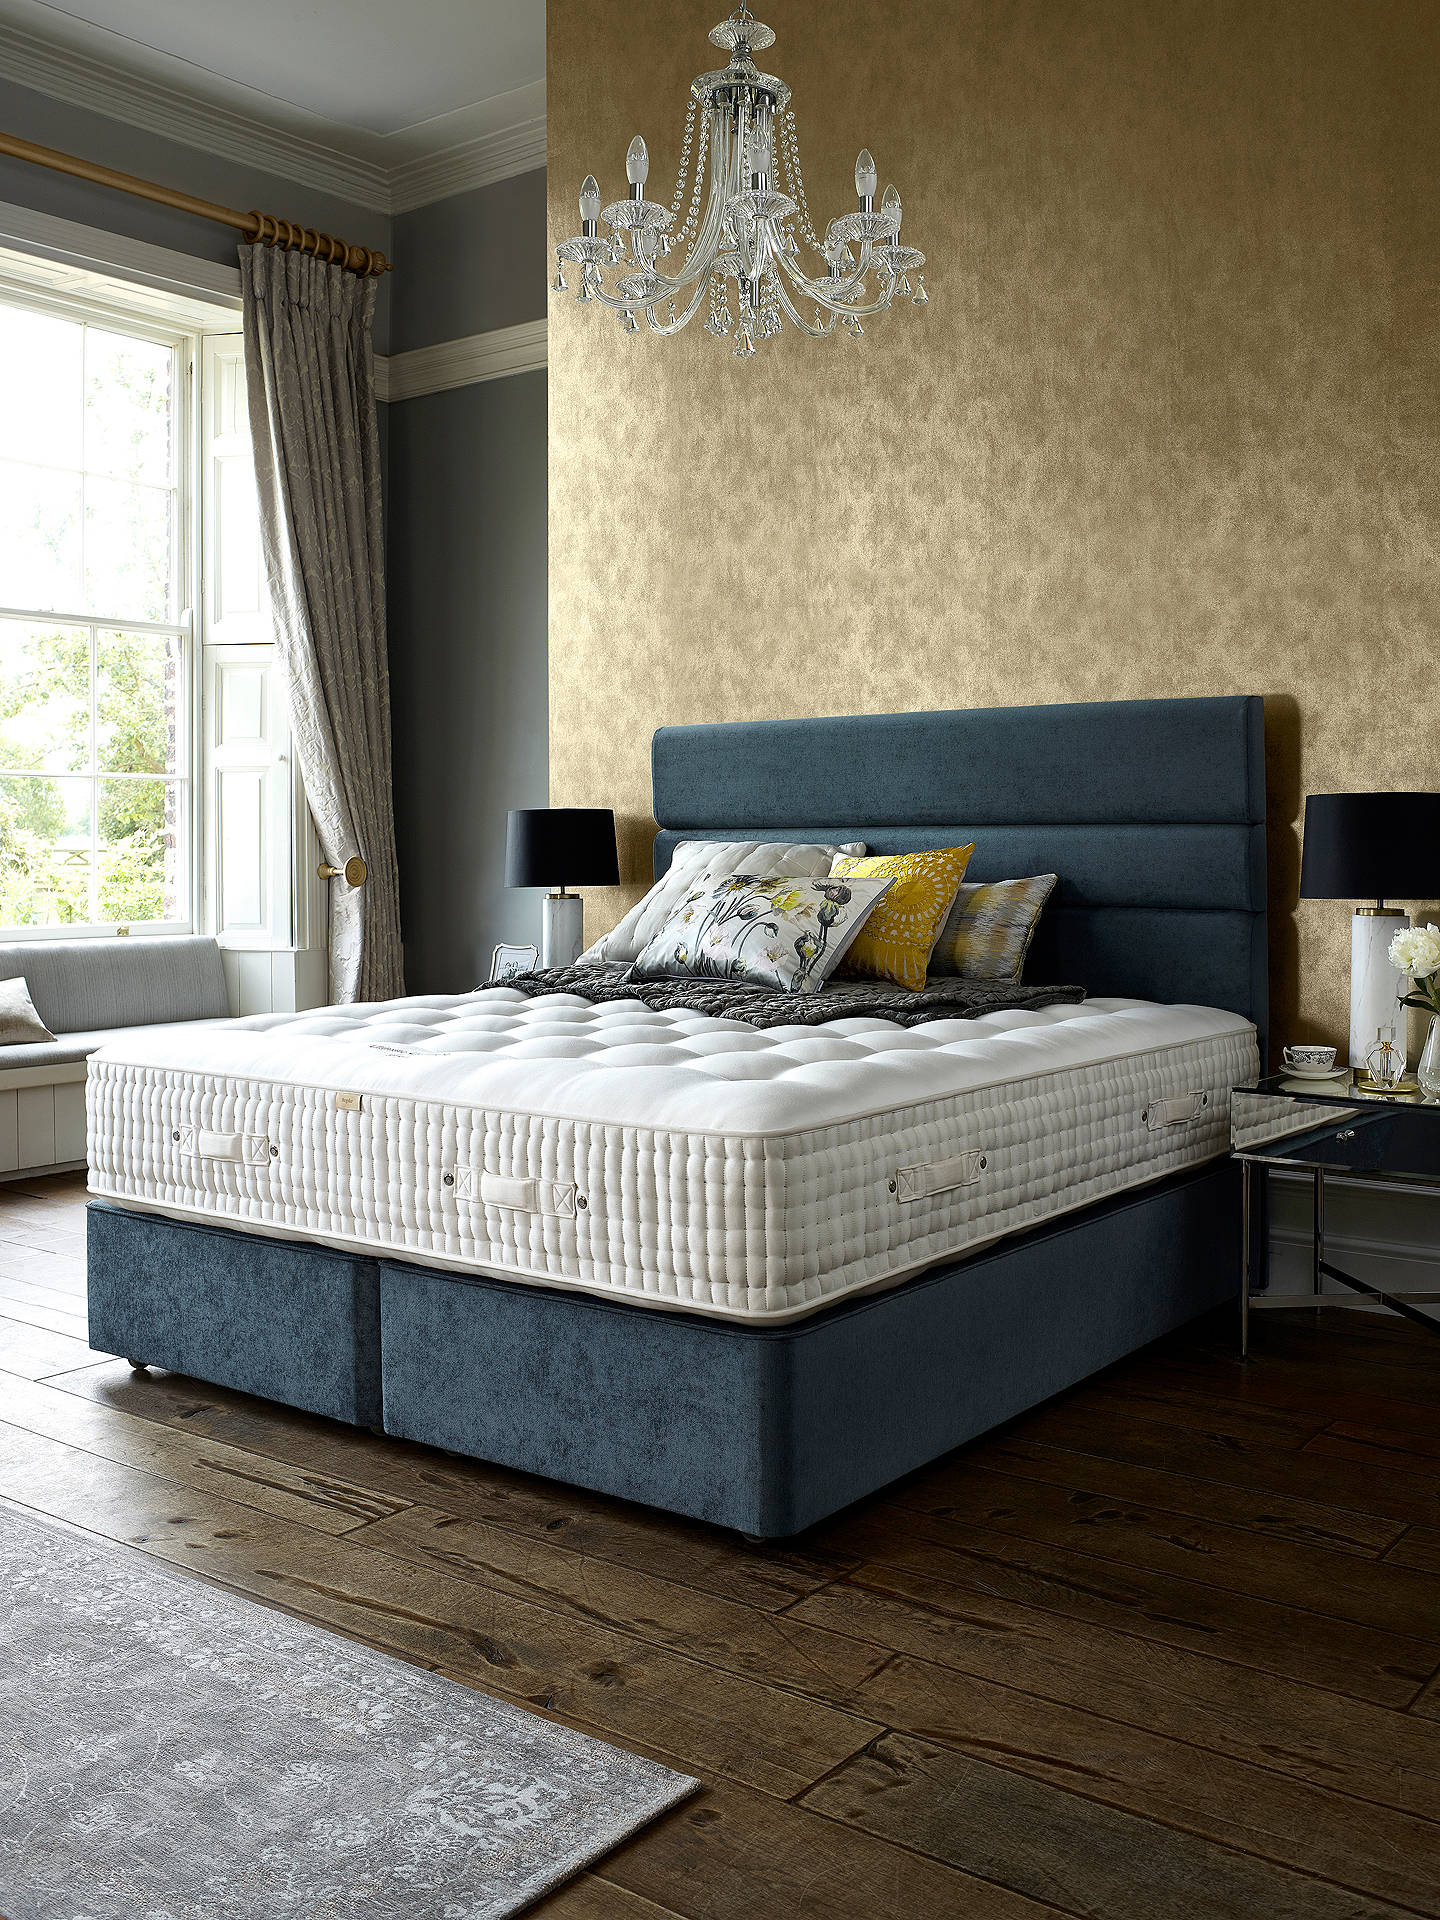 Buy John Lewis & Partners The Ultimate Collection Cashmere Pocket Spring Mattress, Medium, Double Online at johnlewis.com